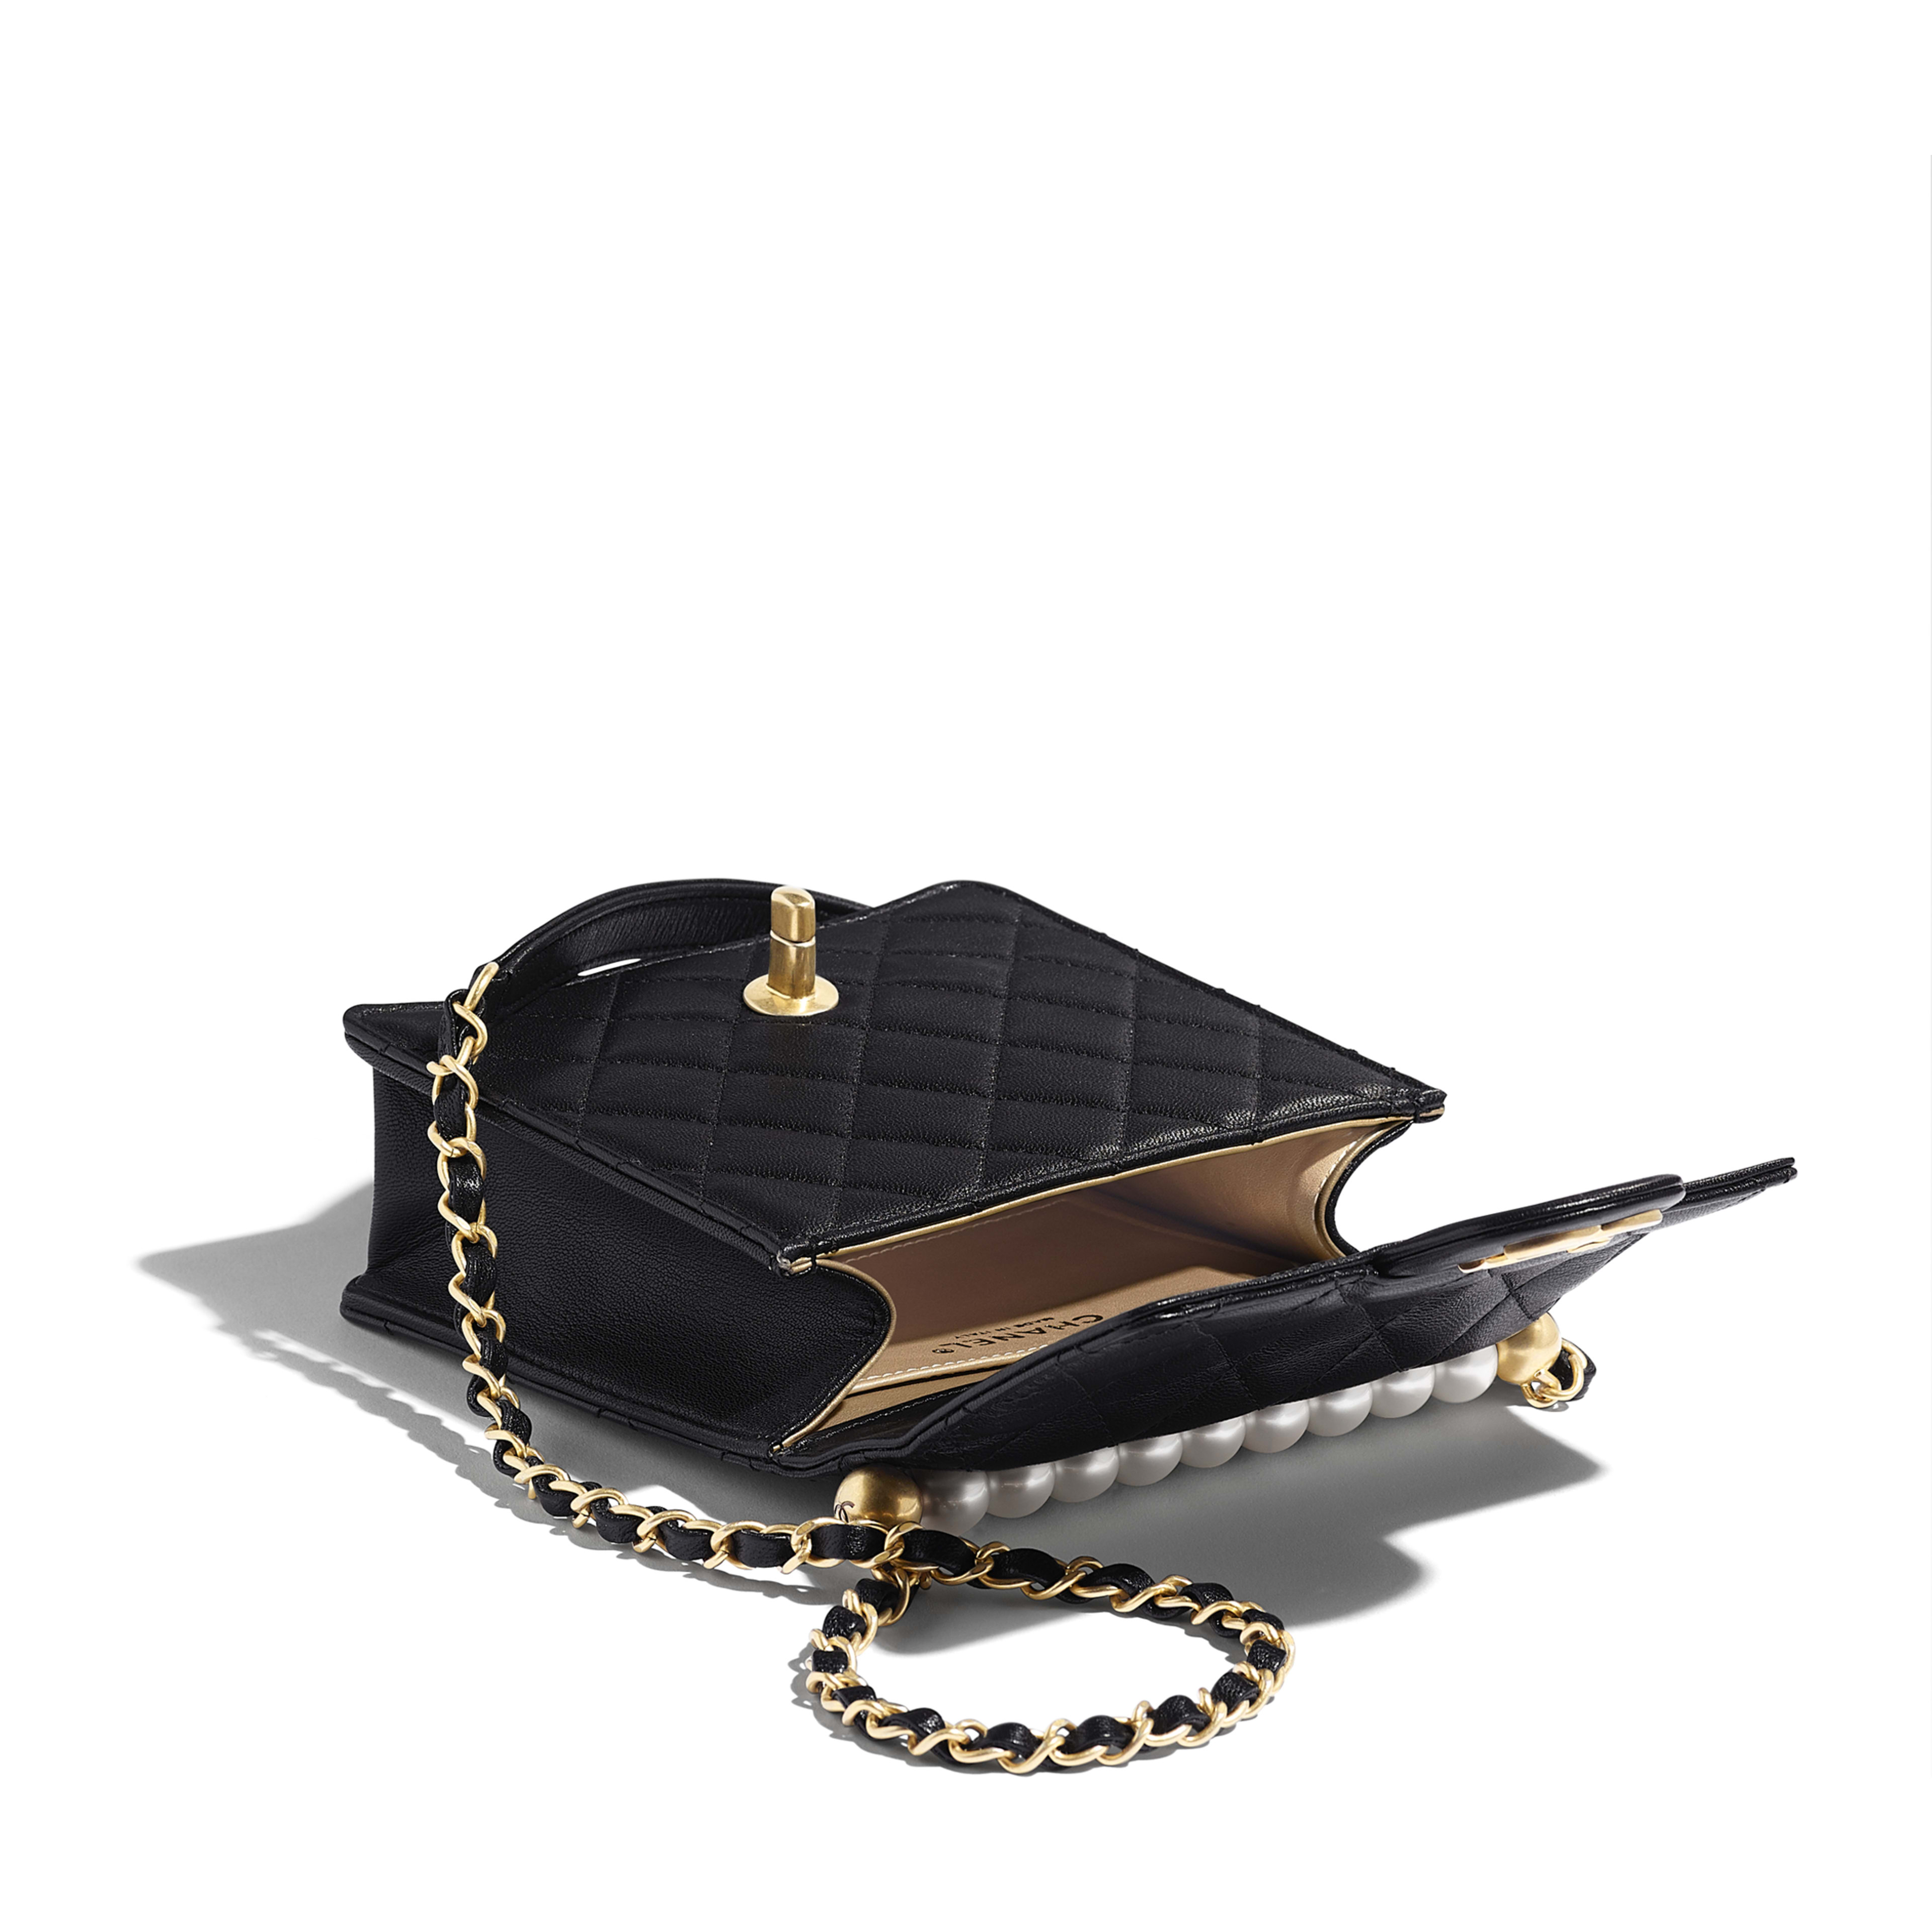 Flap Bag - Black - Goatskin, Imitation Pearls & Gold-Tone Metal - Other view - see full sized version